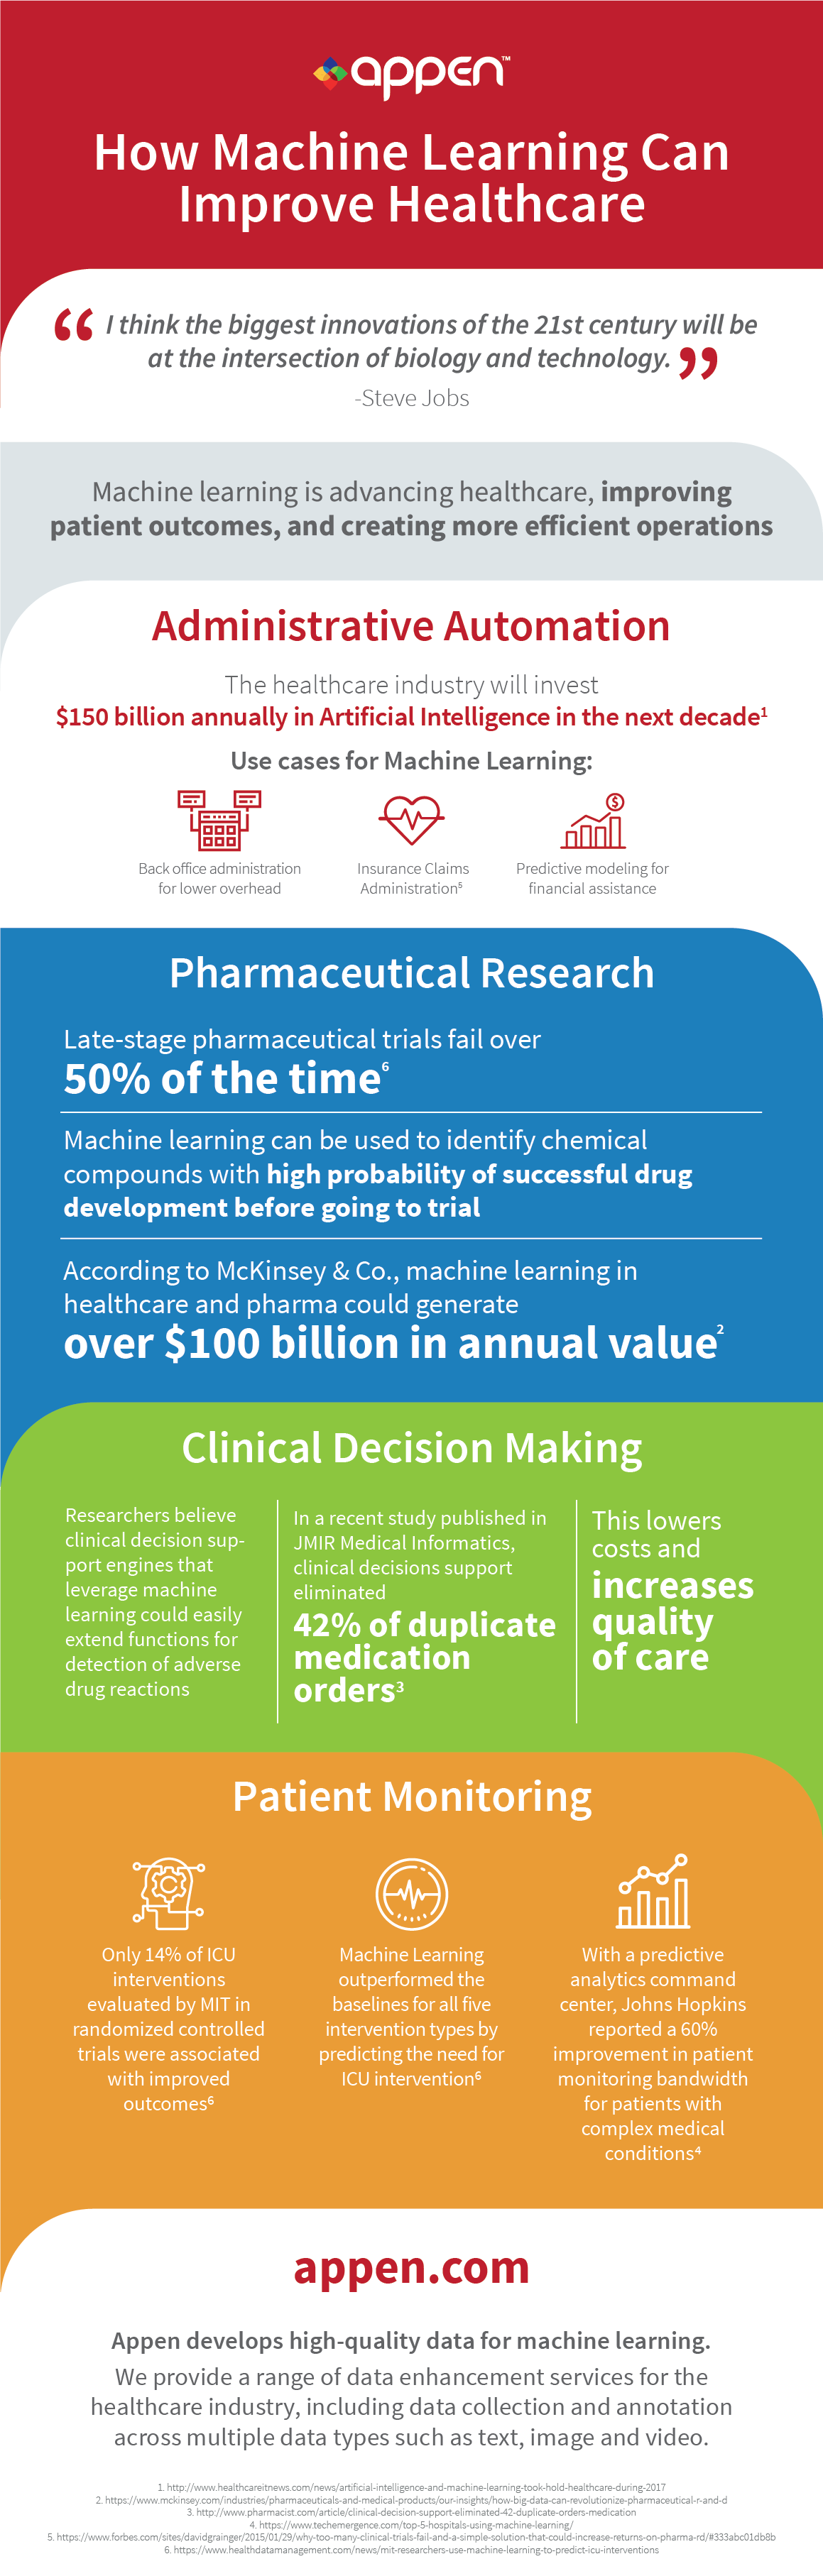 Appen How Machine Learning Can Improve Healthcare infographic